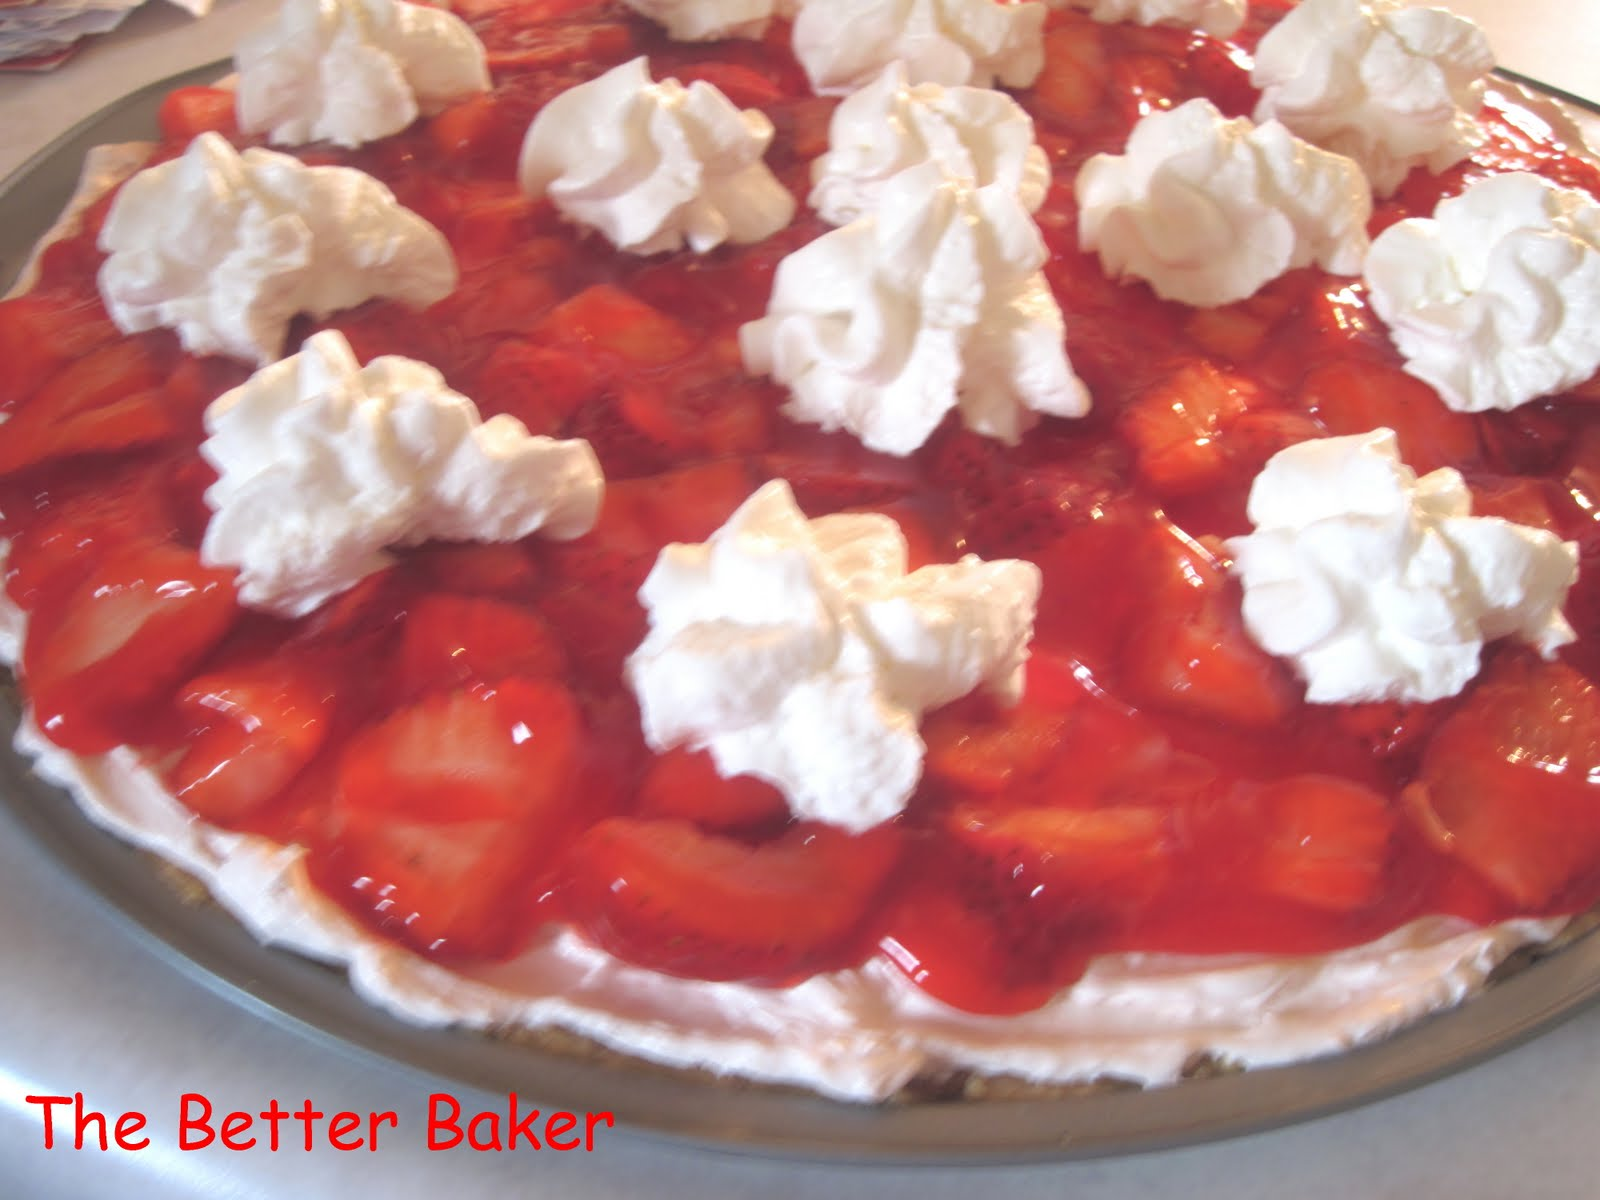 dessert pizza comes strawberry cheesecake dessert and cream dessert ...